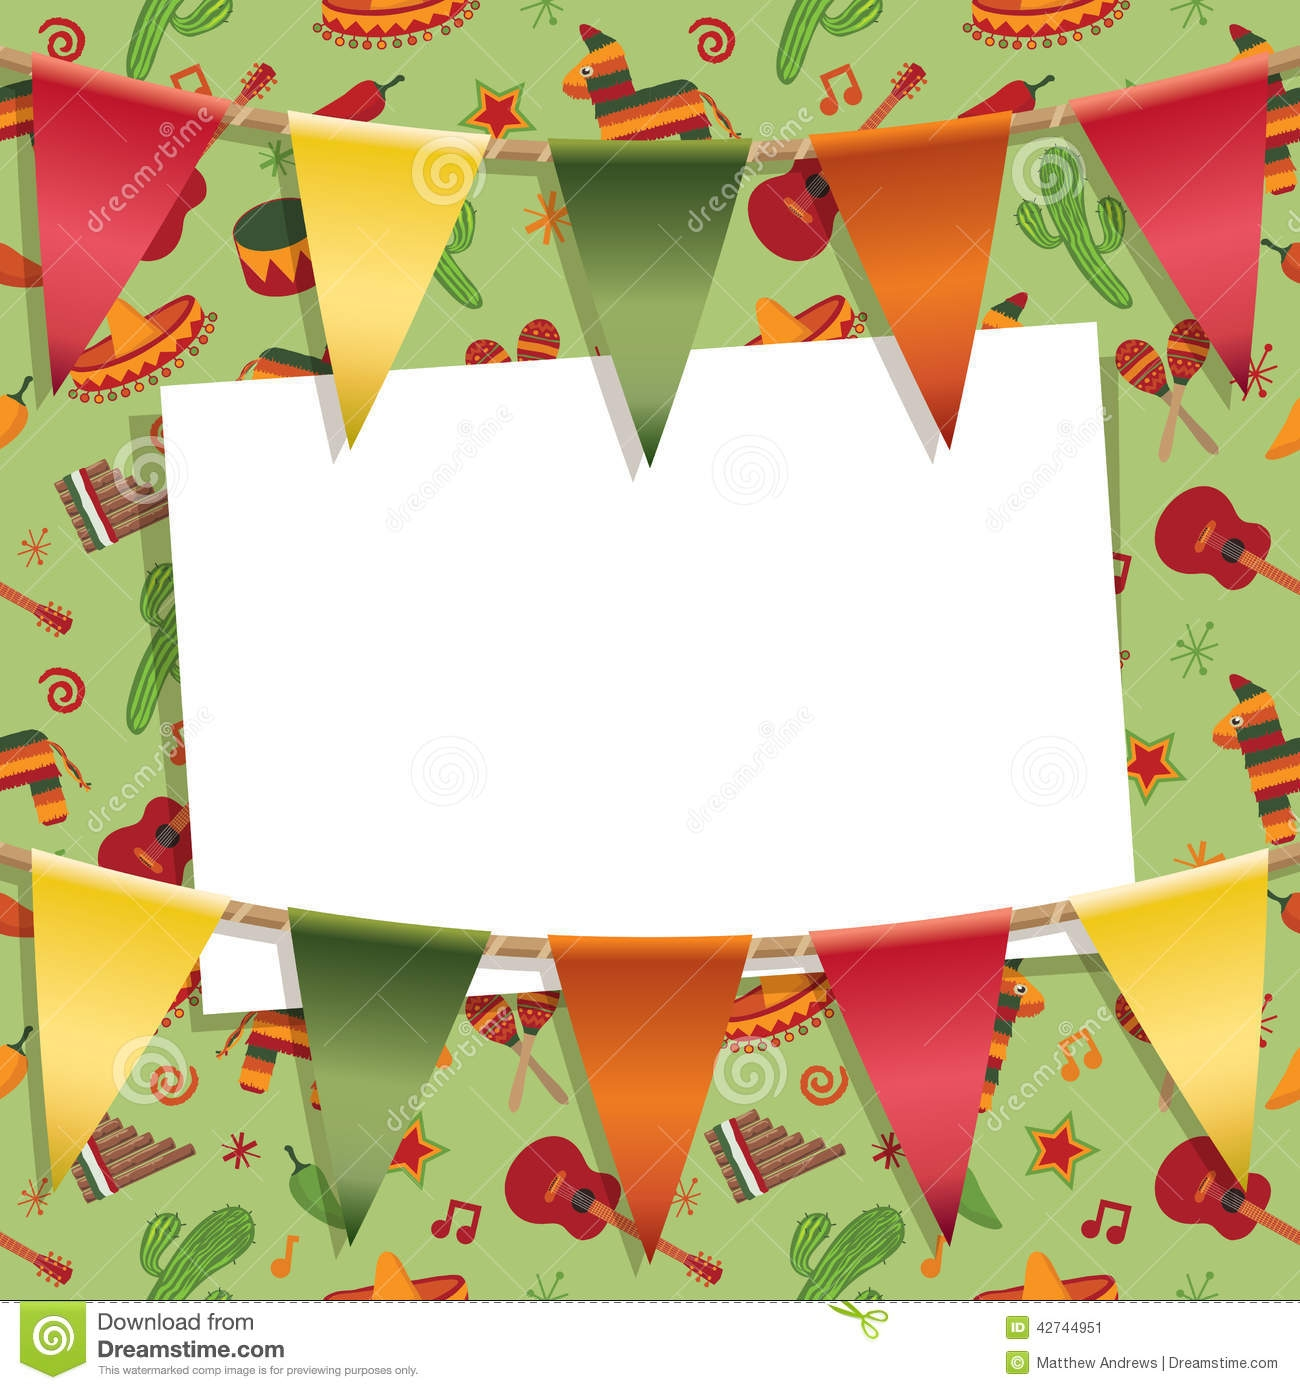 Wallpaper clipart party Party  Design addition Home